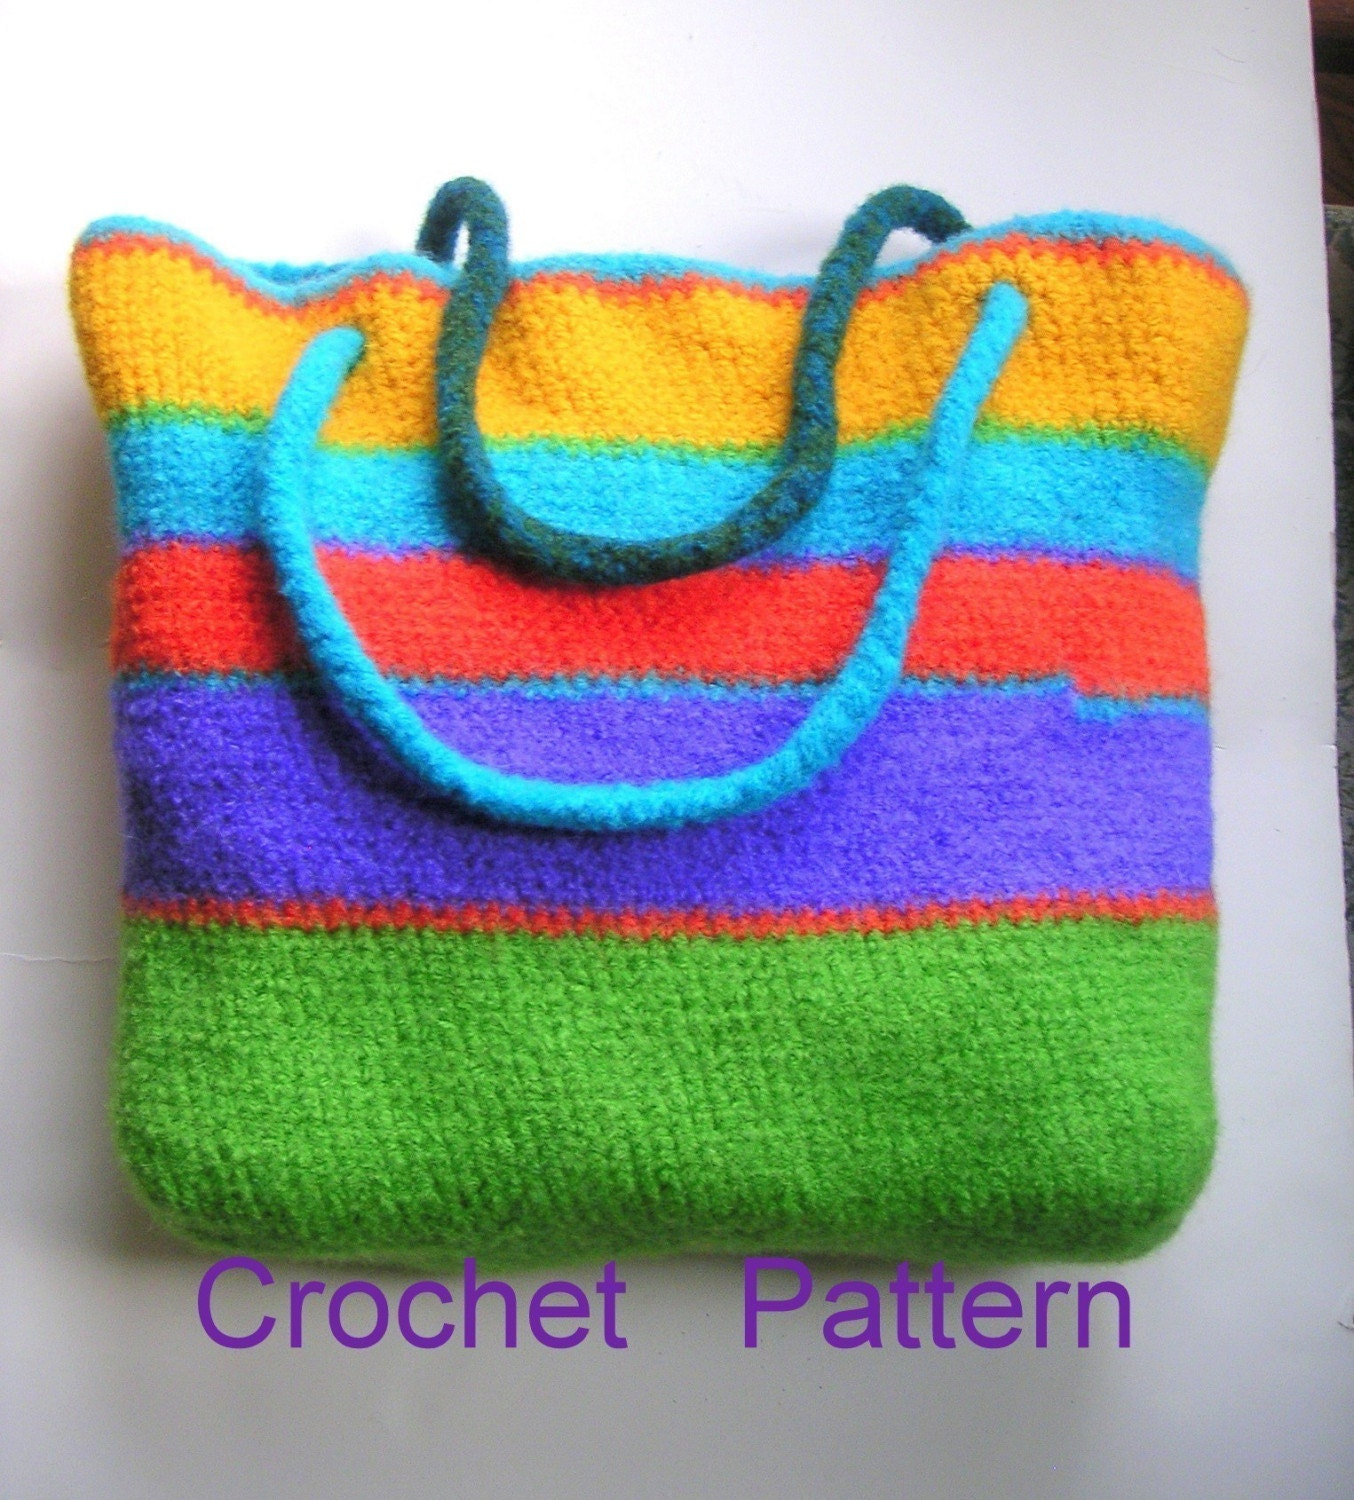 Beginner Crochet Tote Bag Pattern : Big Color Block Tote Bag - Crochet Felted Pattern pdf - Easy Beginner